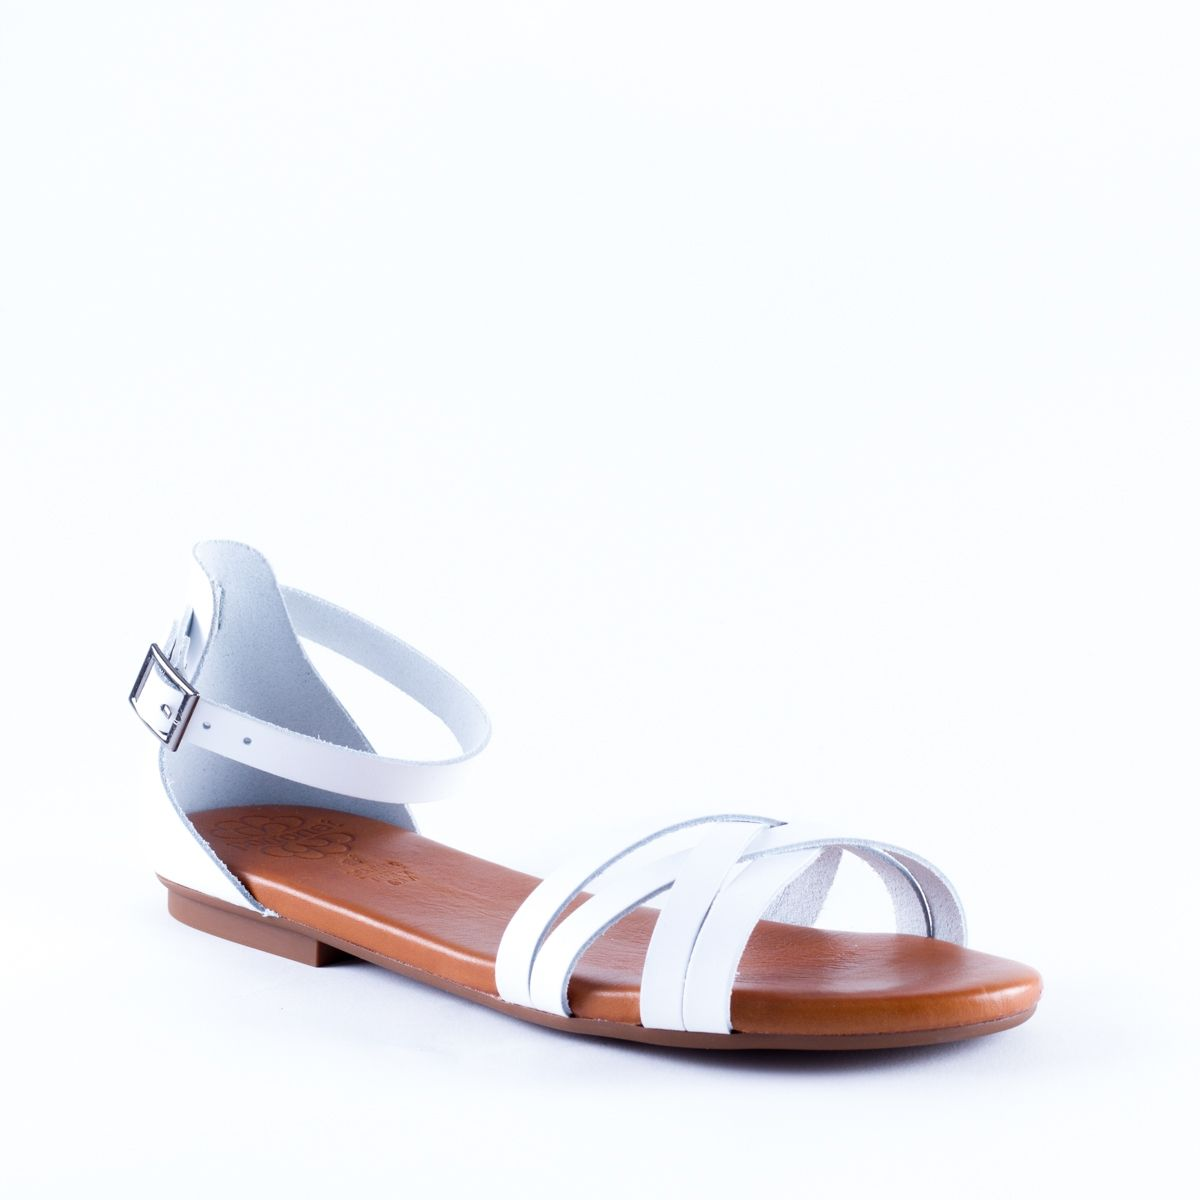 Chaussures à bout rond Porronet blanches femme 4yxNruv